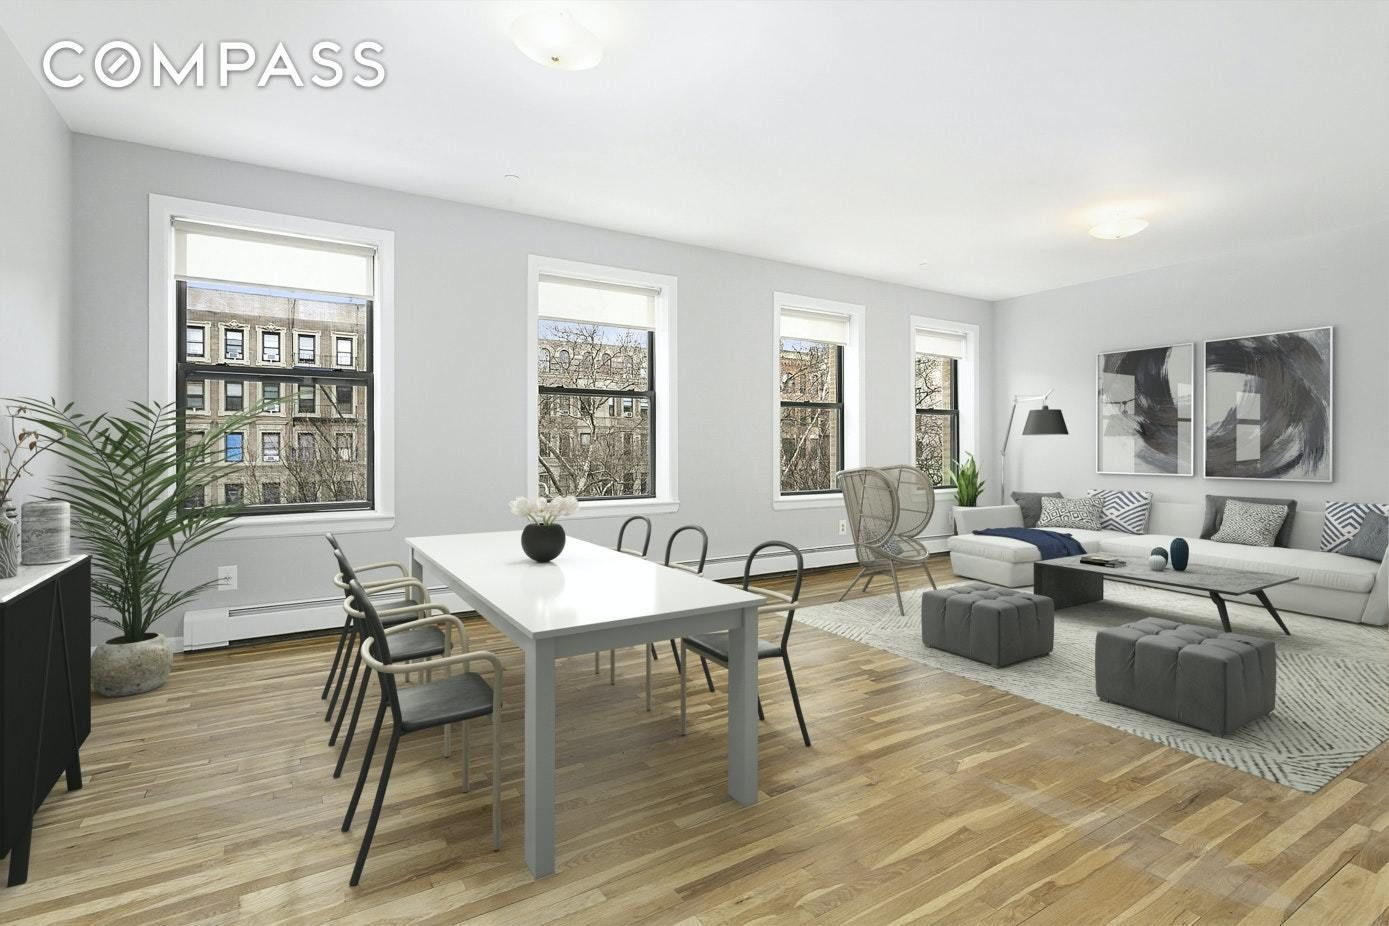 Apartment for sale at 200 West 112th Street, Apt 3-A